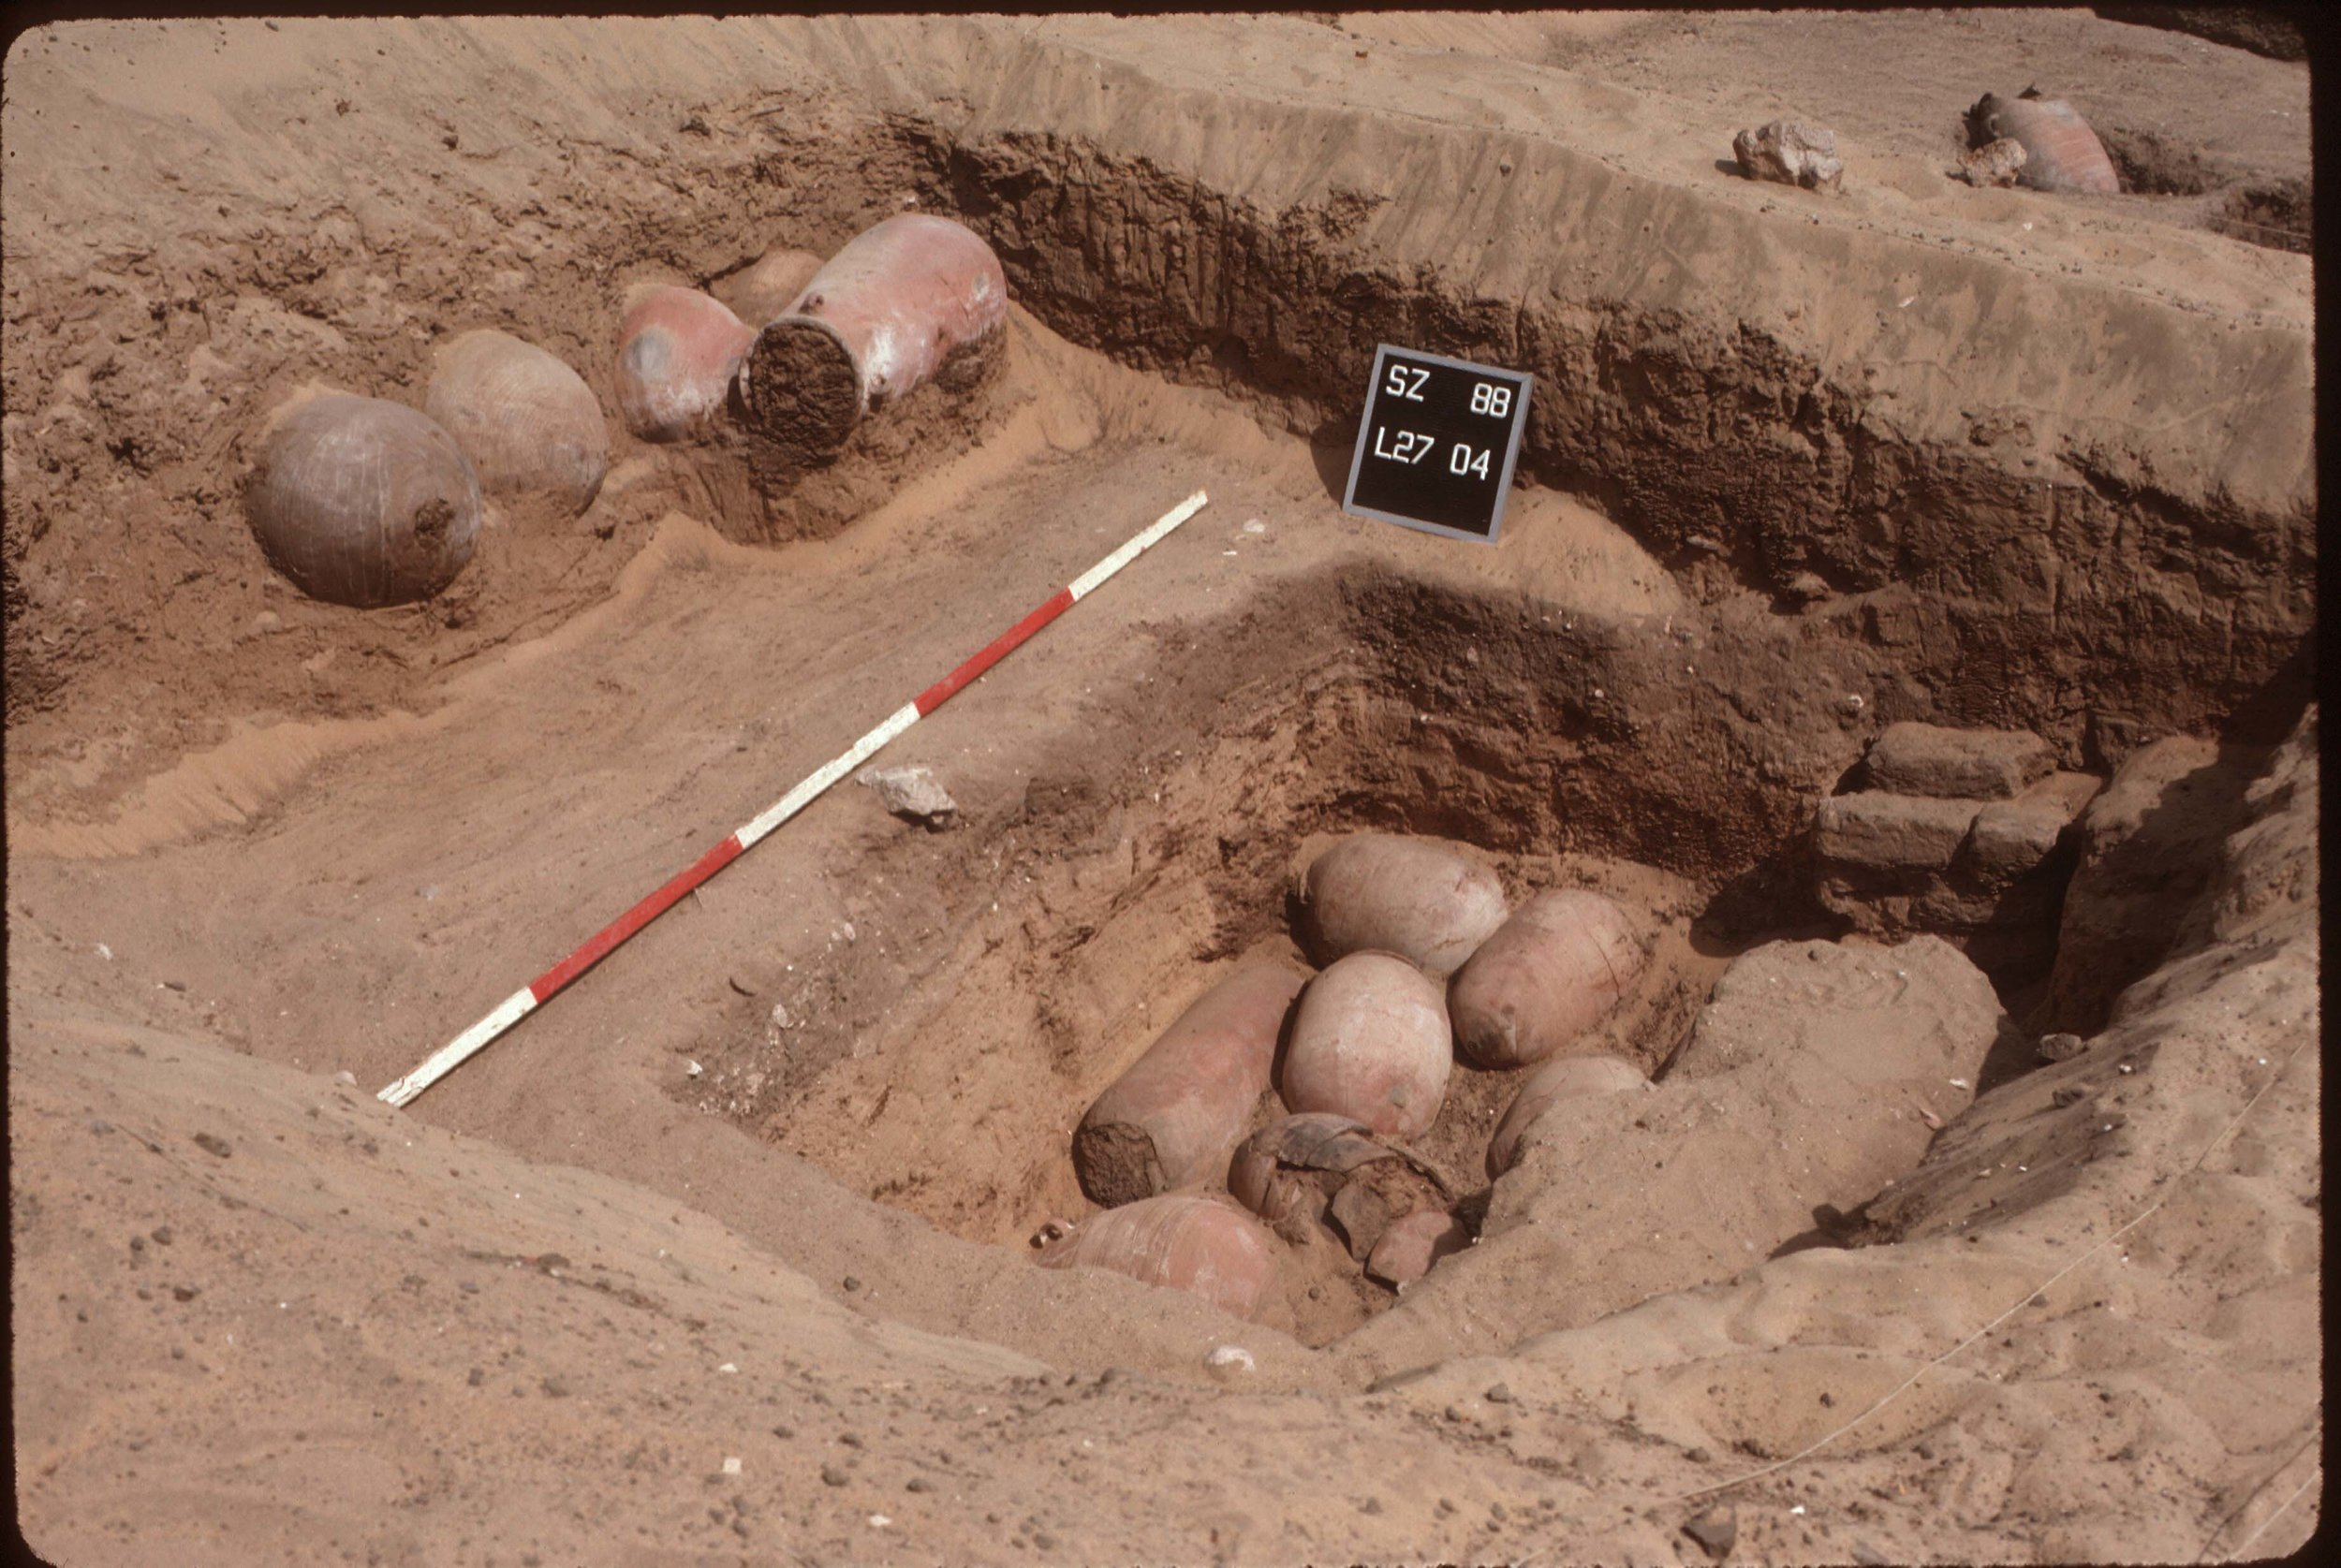 Fig. 8. Excavation of ibis burials inside the Shunet el-Zebib during the 1988 season. Photo: David O'Connor © North Abydos Expedition (formerly Penn-Yale-IFA), courtesy of the Penn Museum